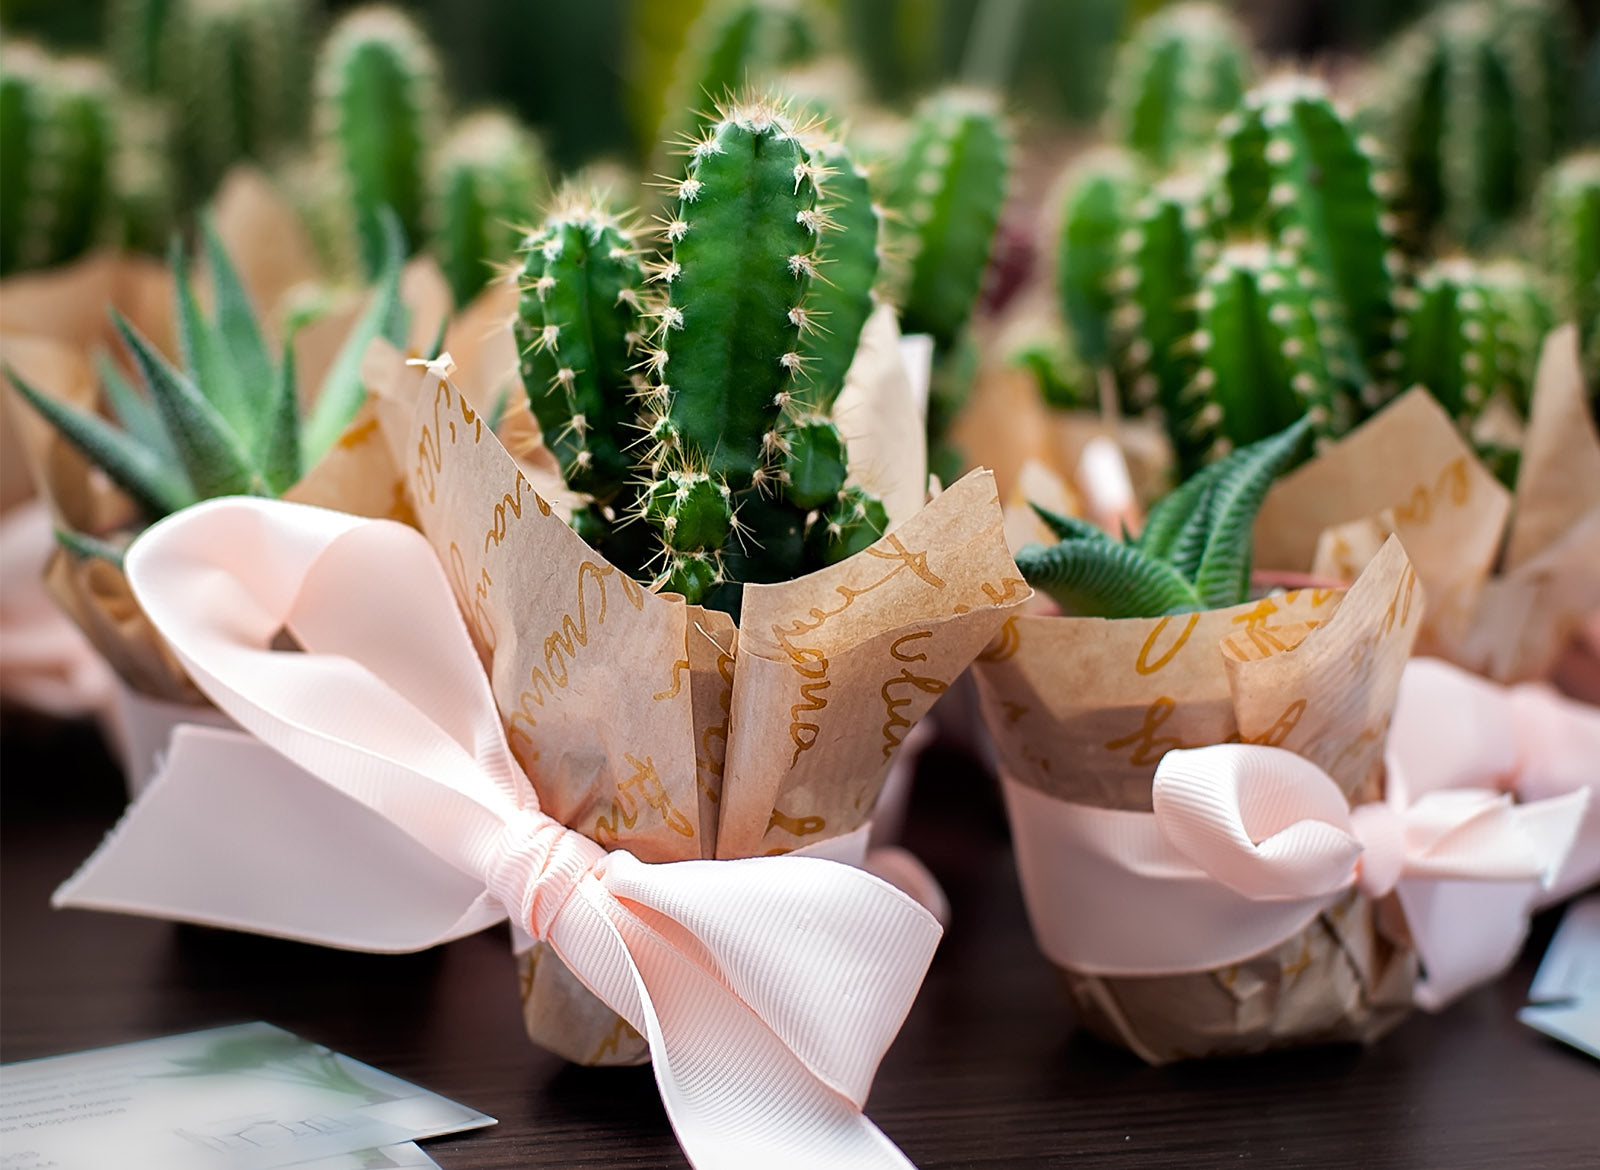 Houseplant Gifting Guide